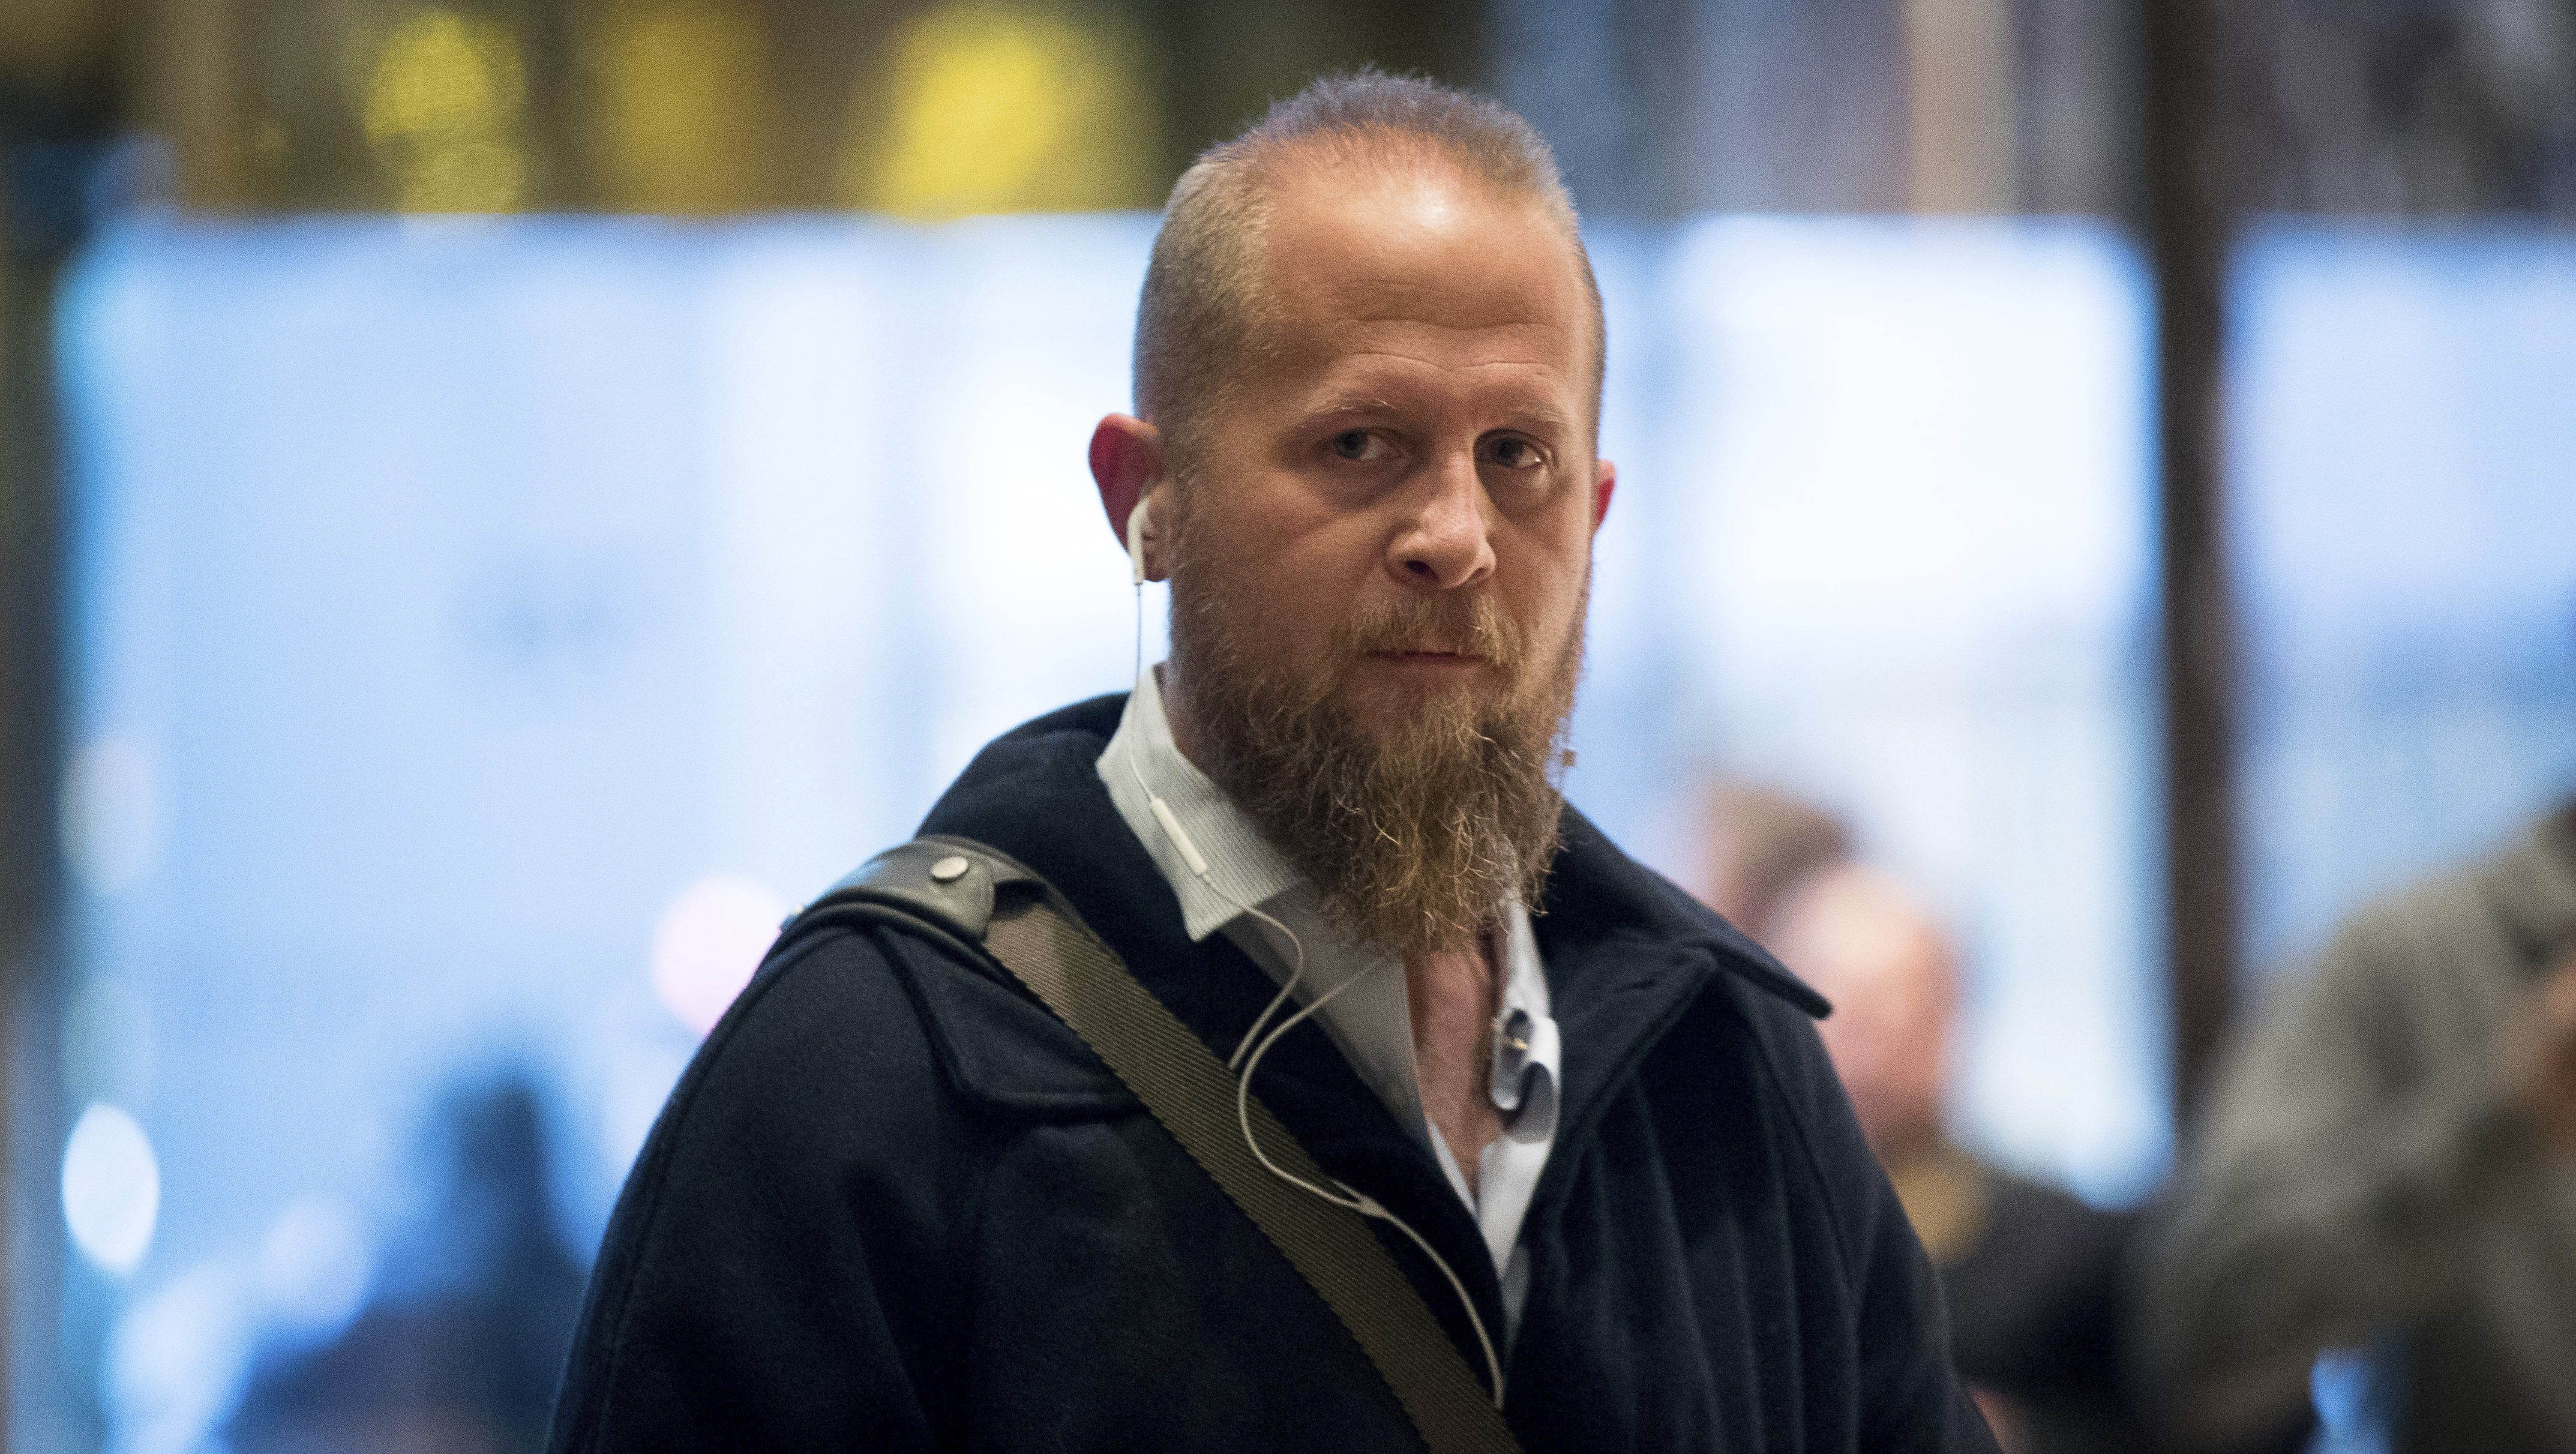 Brad Parscale, who was the President elect Donald Trump's campaign digital director arrives at Trump Tower in New York, Tuesday, Dec. 6, 2016. (AP Photo/Andrew Harnik)